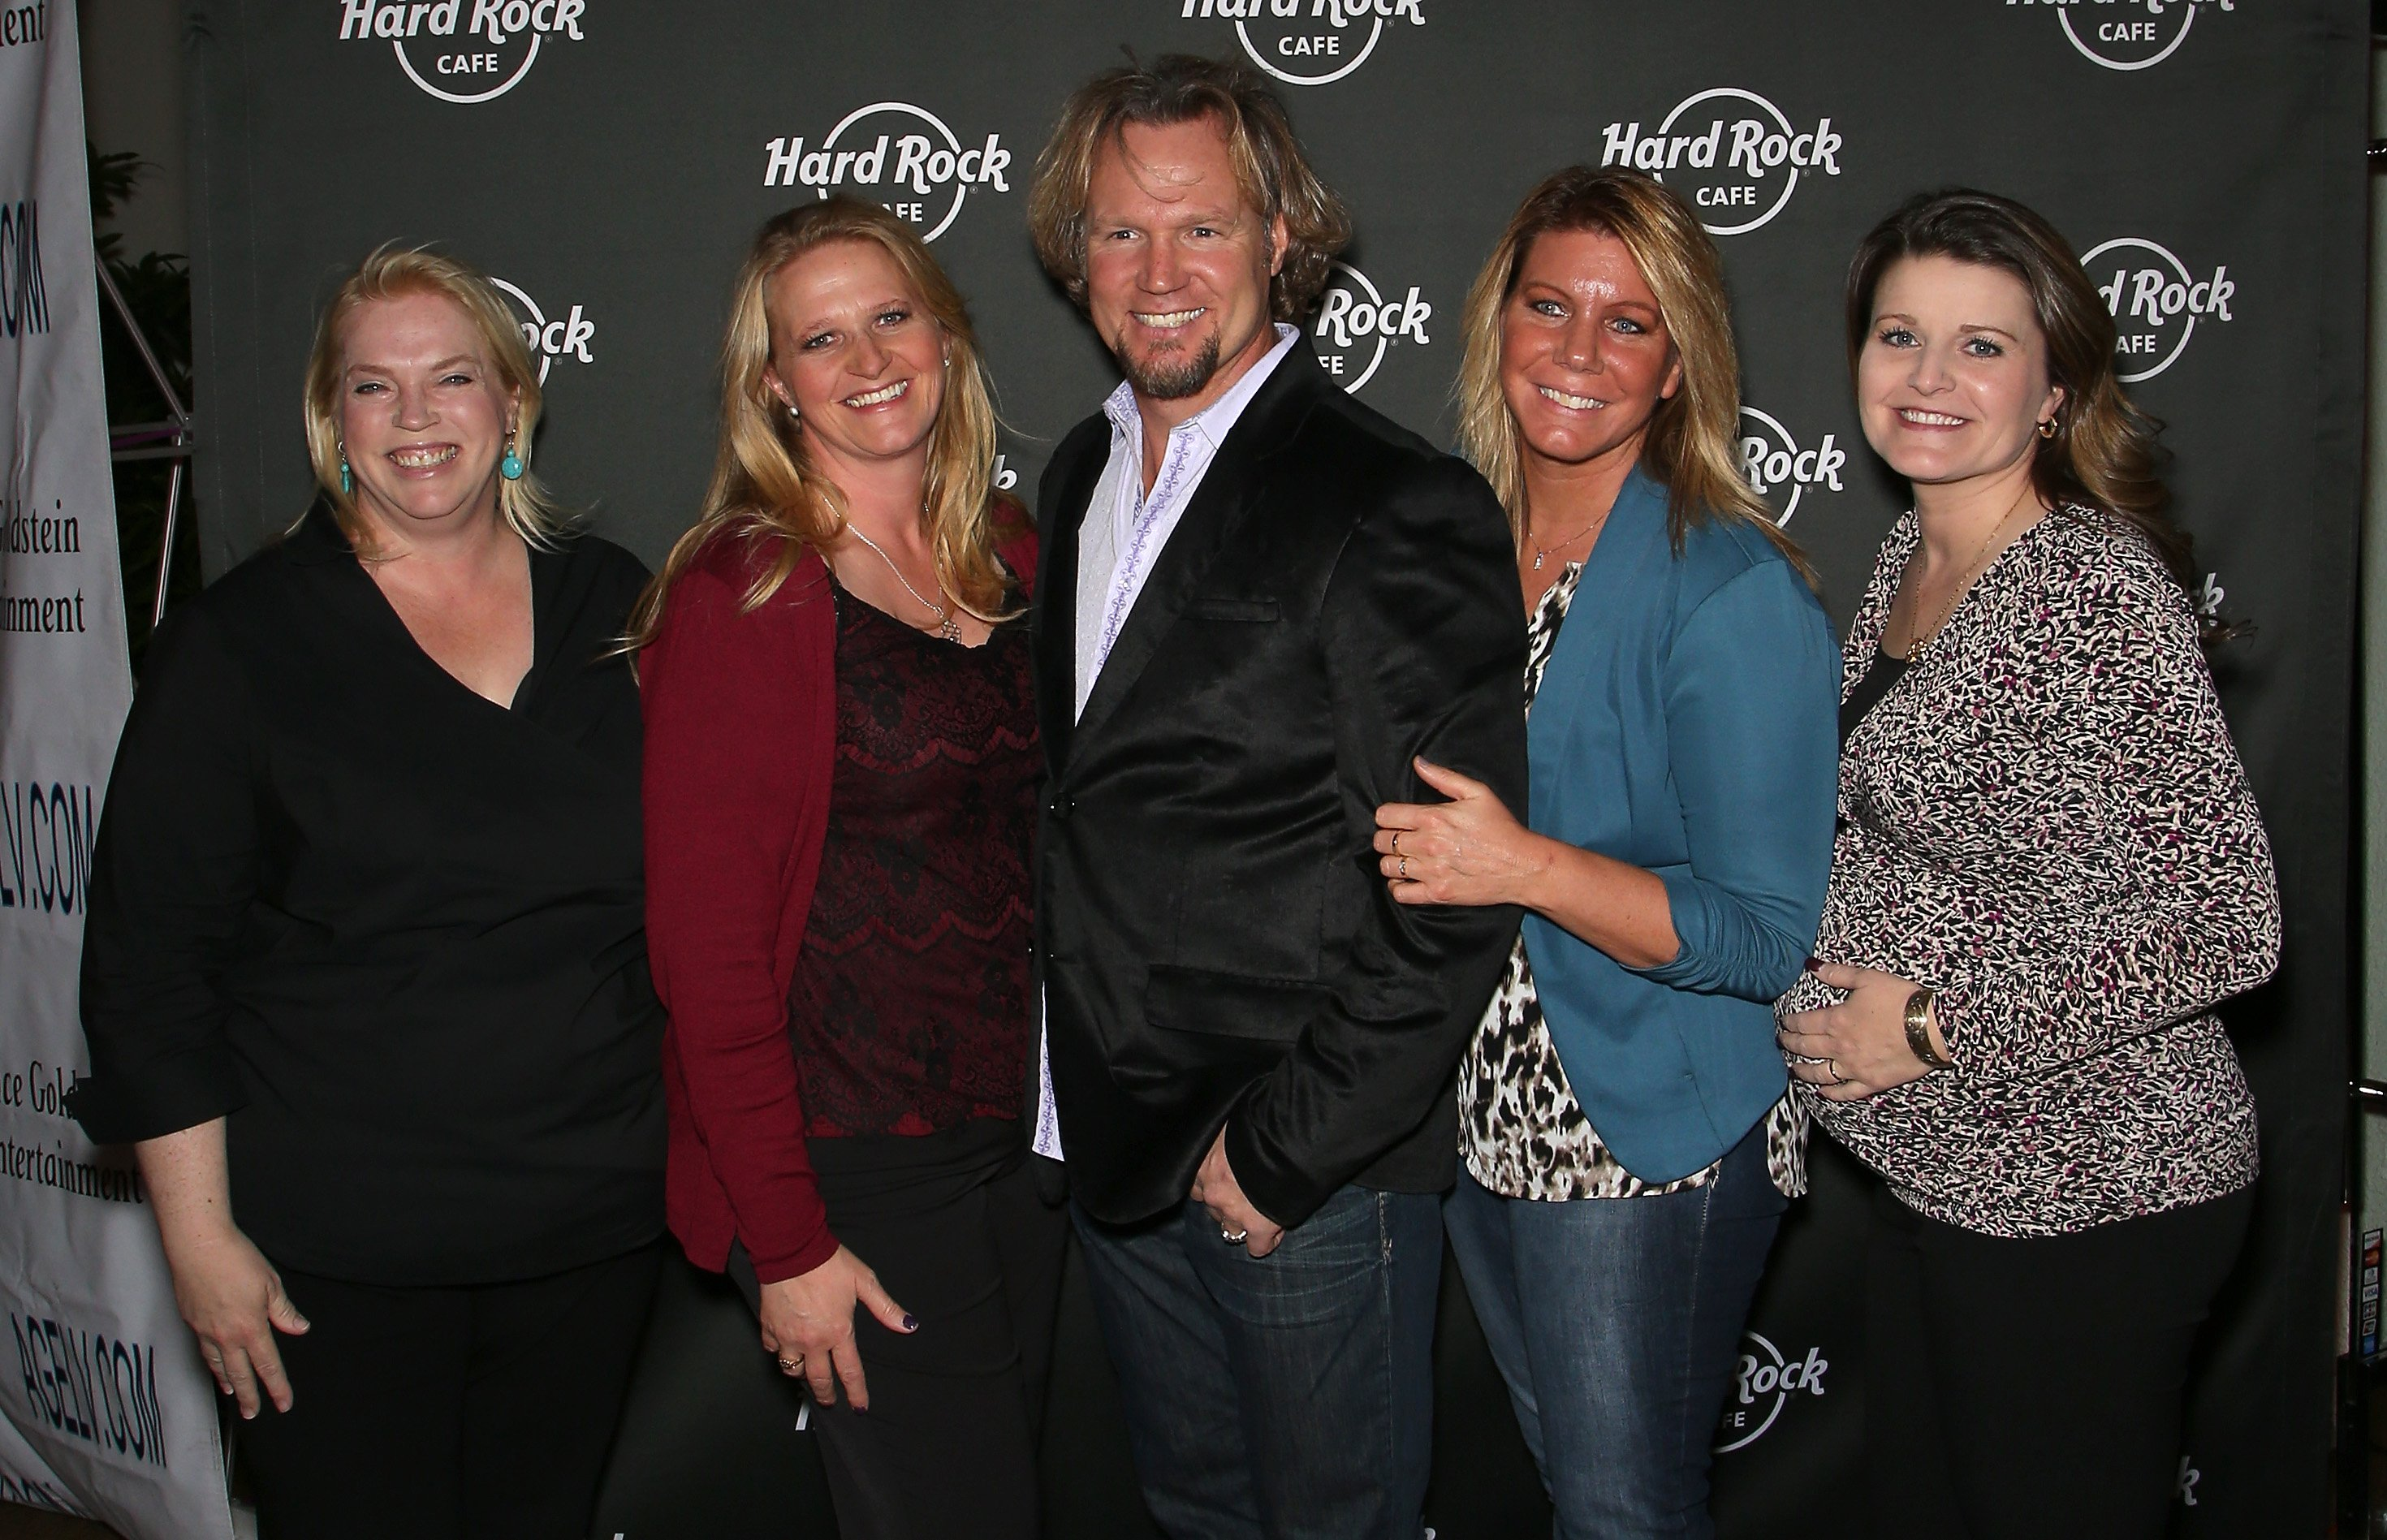 Kody Brown and his wives, Janelle Brown, Christine Brown, Meri Brown and Robyn Brown, attend Hard Rock Cafe Las Vegas at Hard Rock Hotel's 25th anniversary celebration on October 10, 2015 in Las Vegas, Nevada | Photo: Getty Images